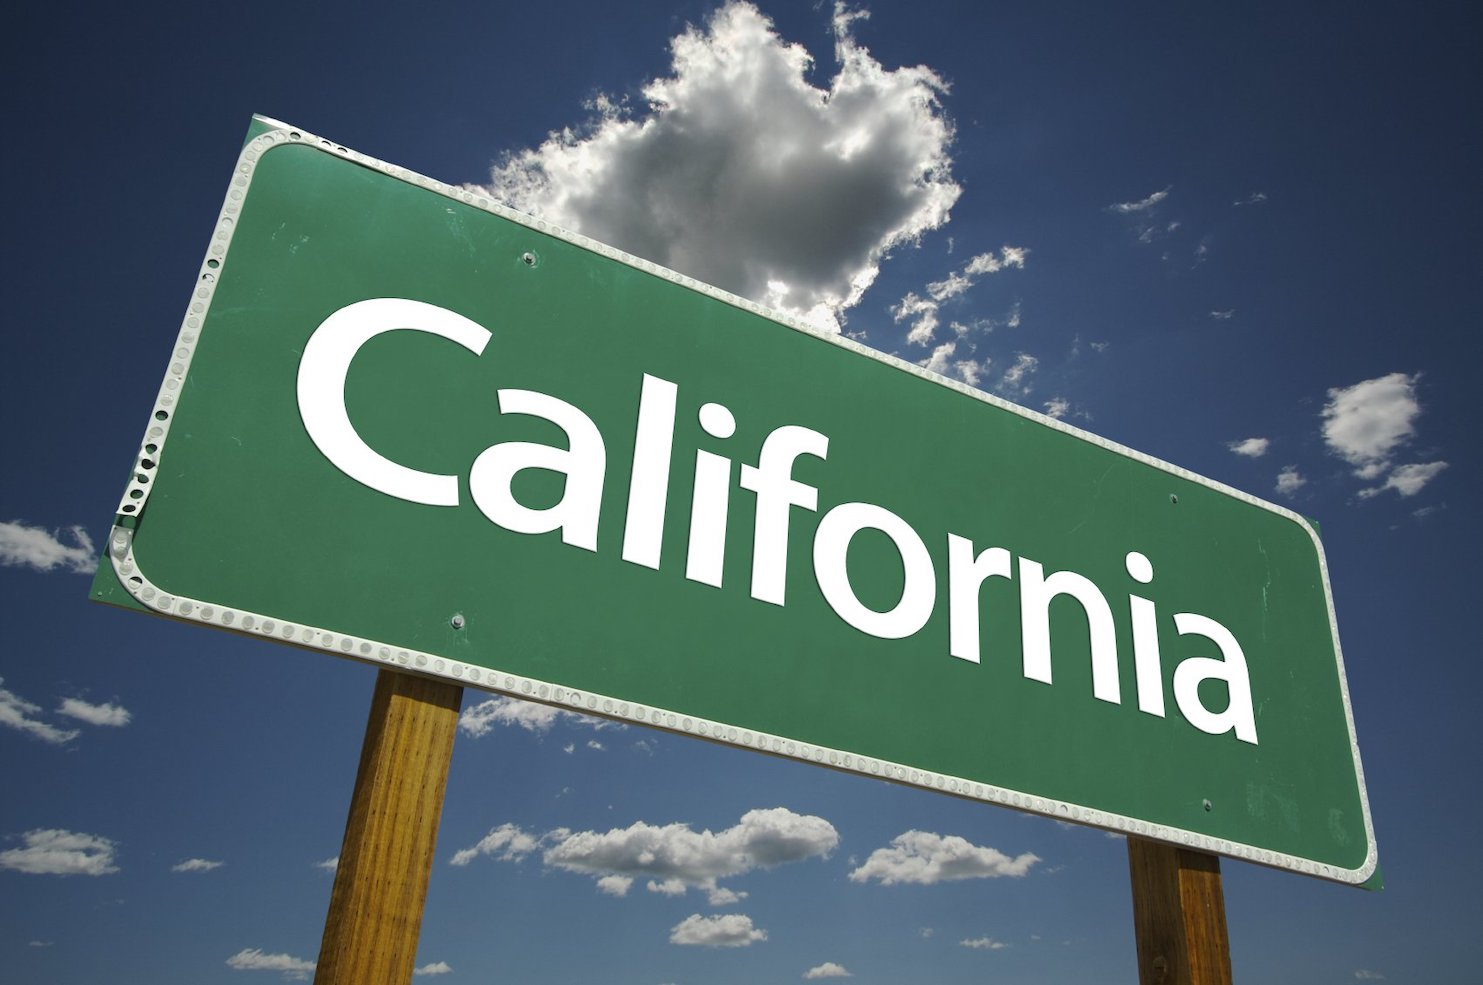 California Privacy Regulation Must Account for COVID-19 Crisis